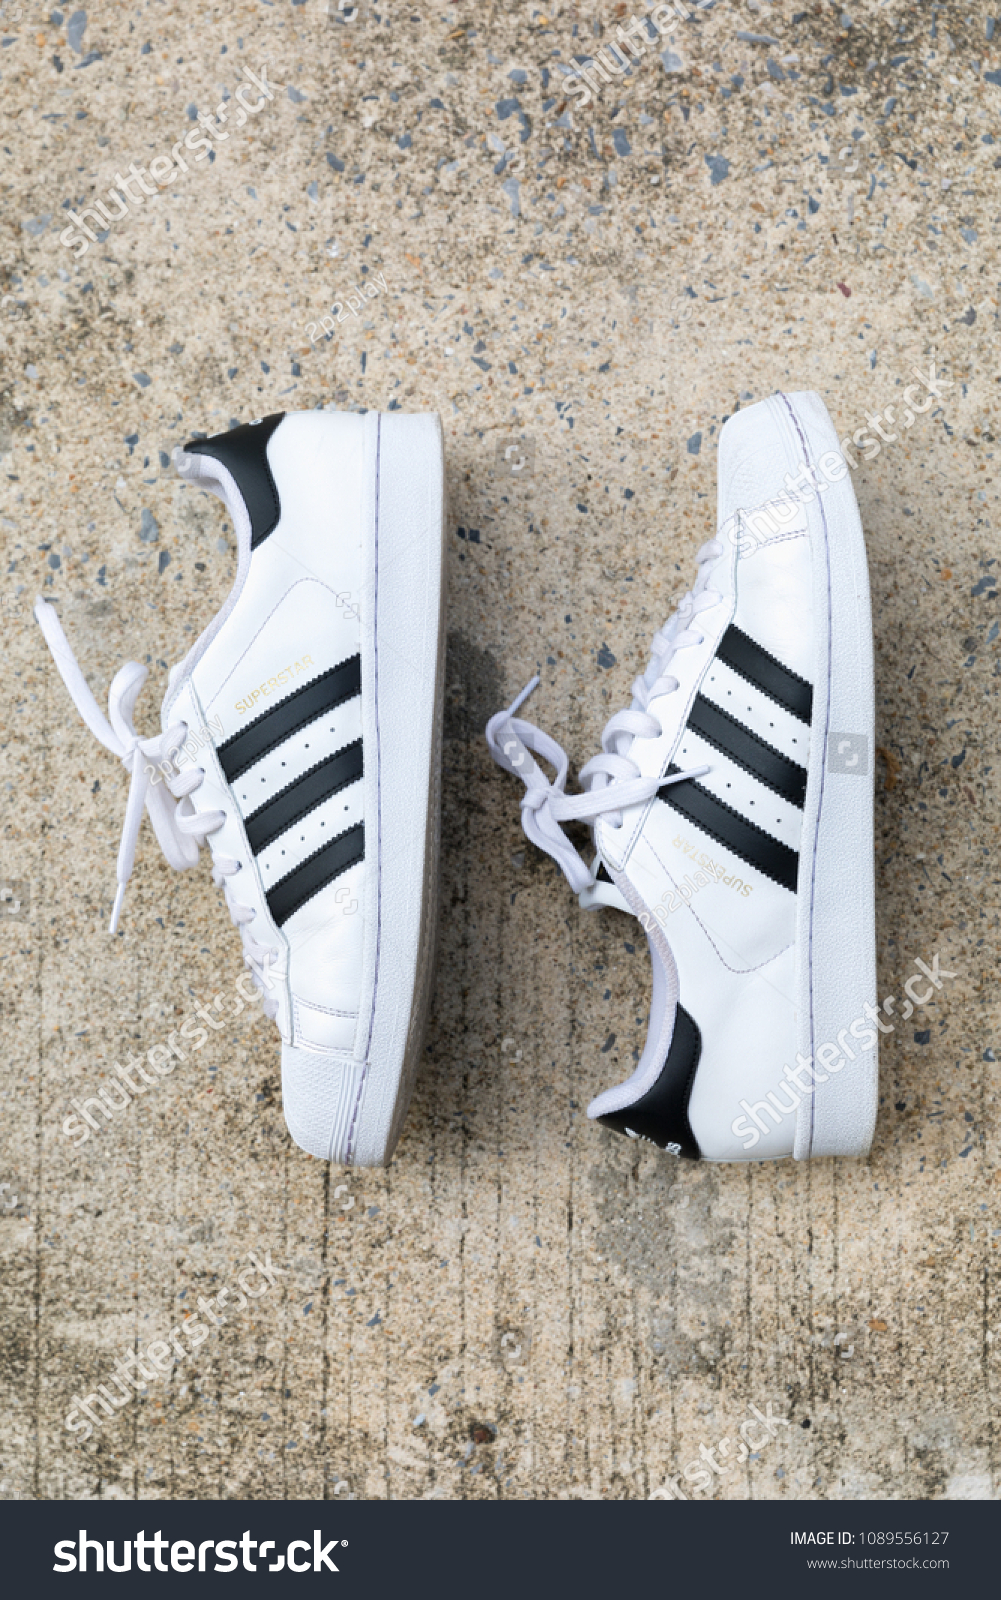 watch f2db8 e37fa BANGKOK, THAILAND - MAY 5, 2018   Adidas Superstar shoe white color stripes  black with popular fashion Thailand on street floor in urban. - Image